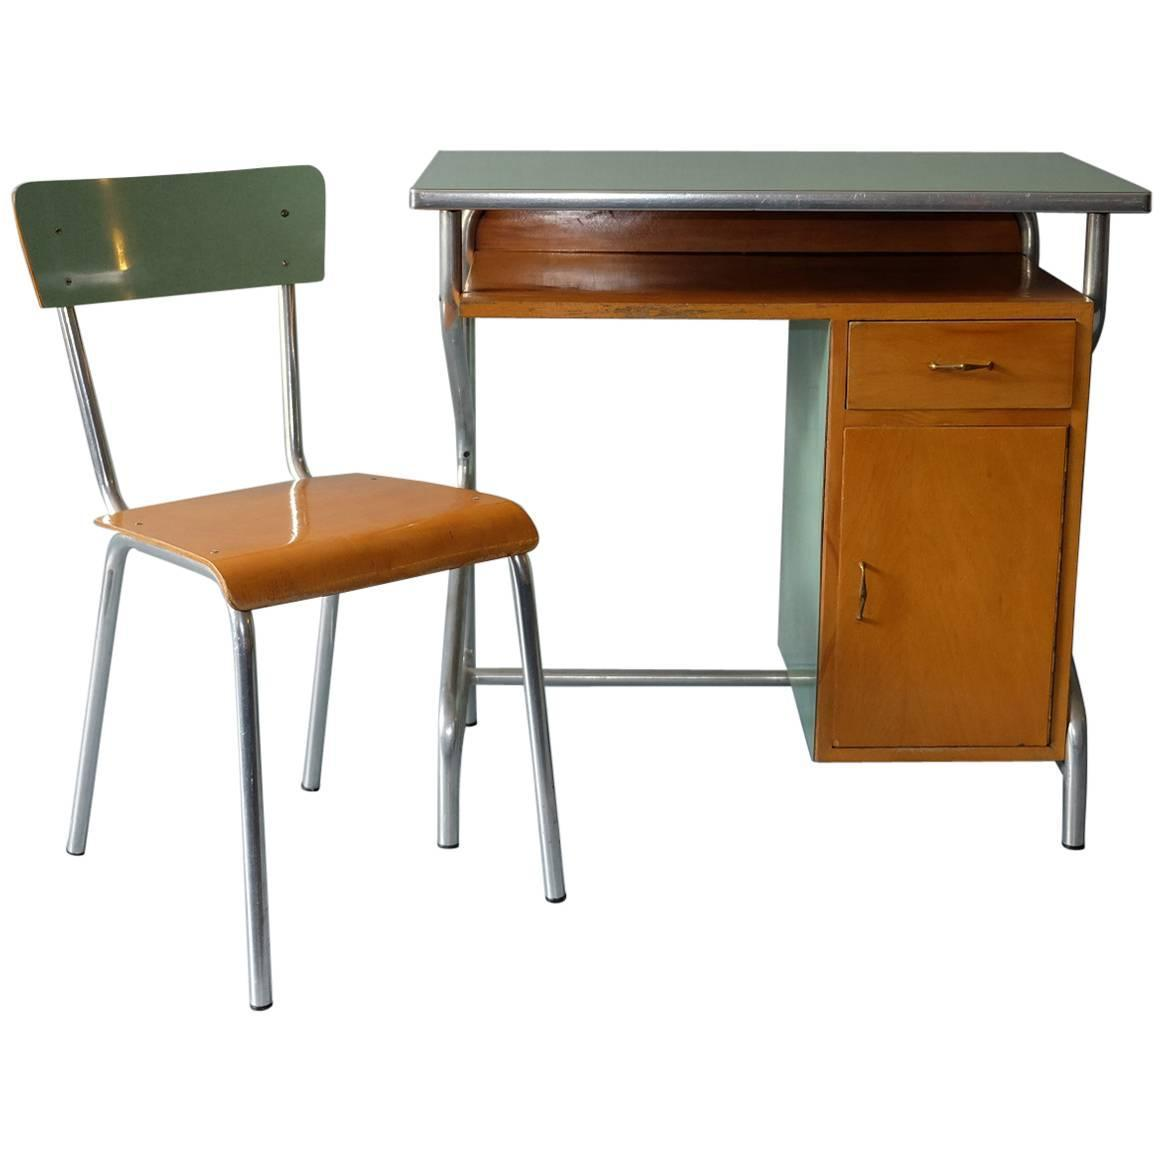 Italian Small Desk and Chair Metal and Formica 1950s at